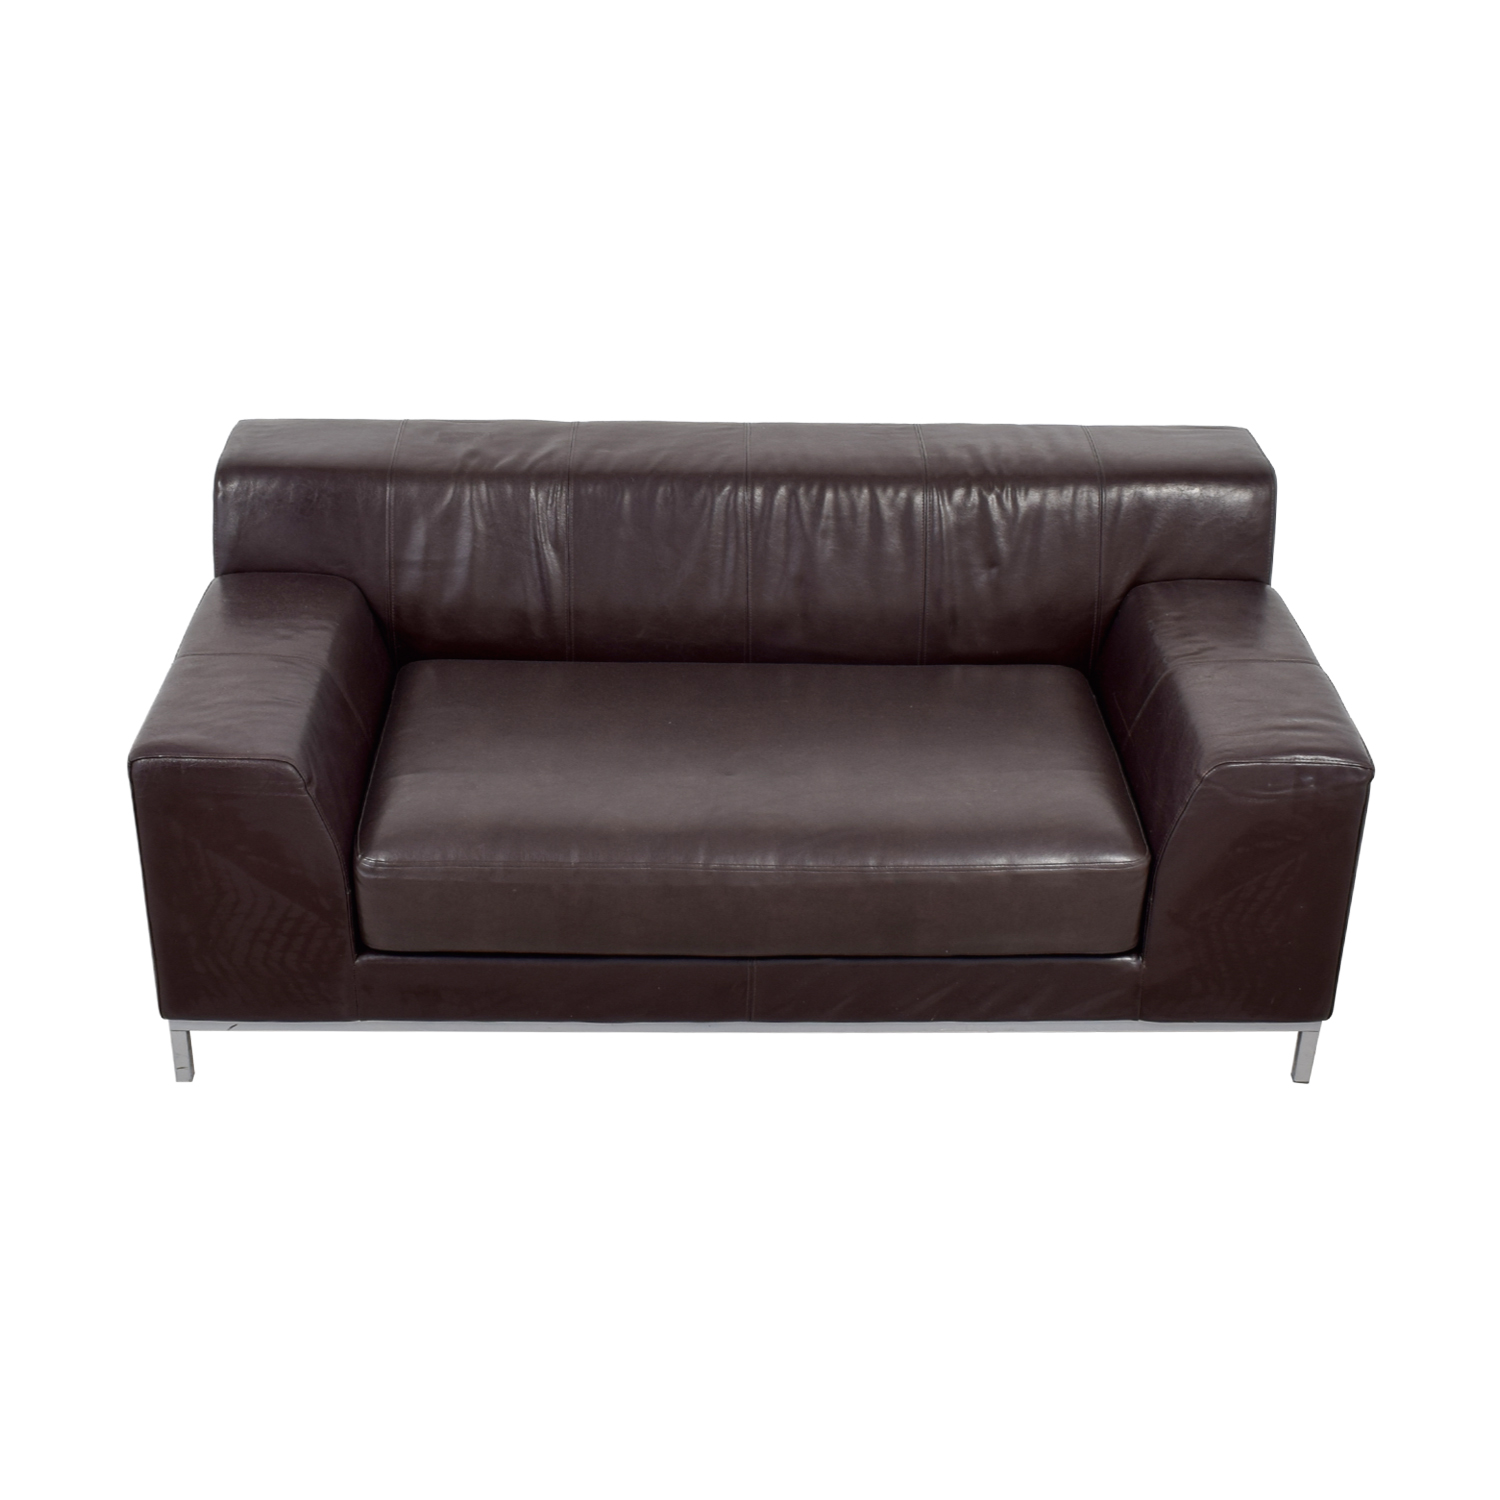 IKEA Kramfors Brown Leather Love Seat / Sofas